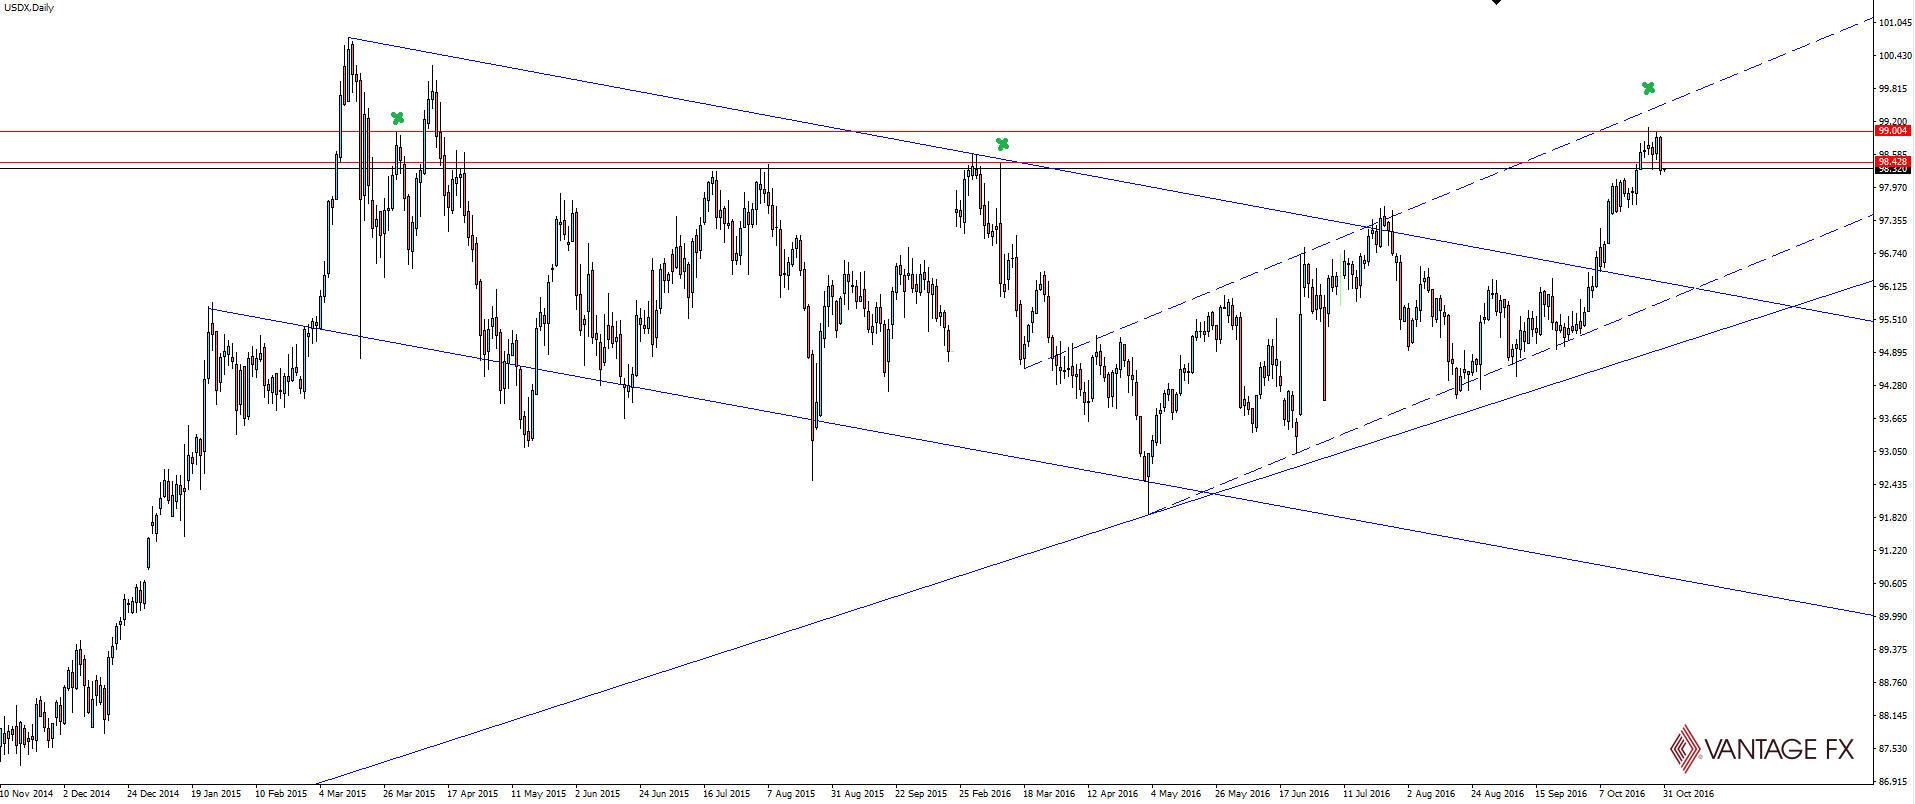 USDX Daily Chart